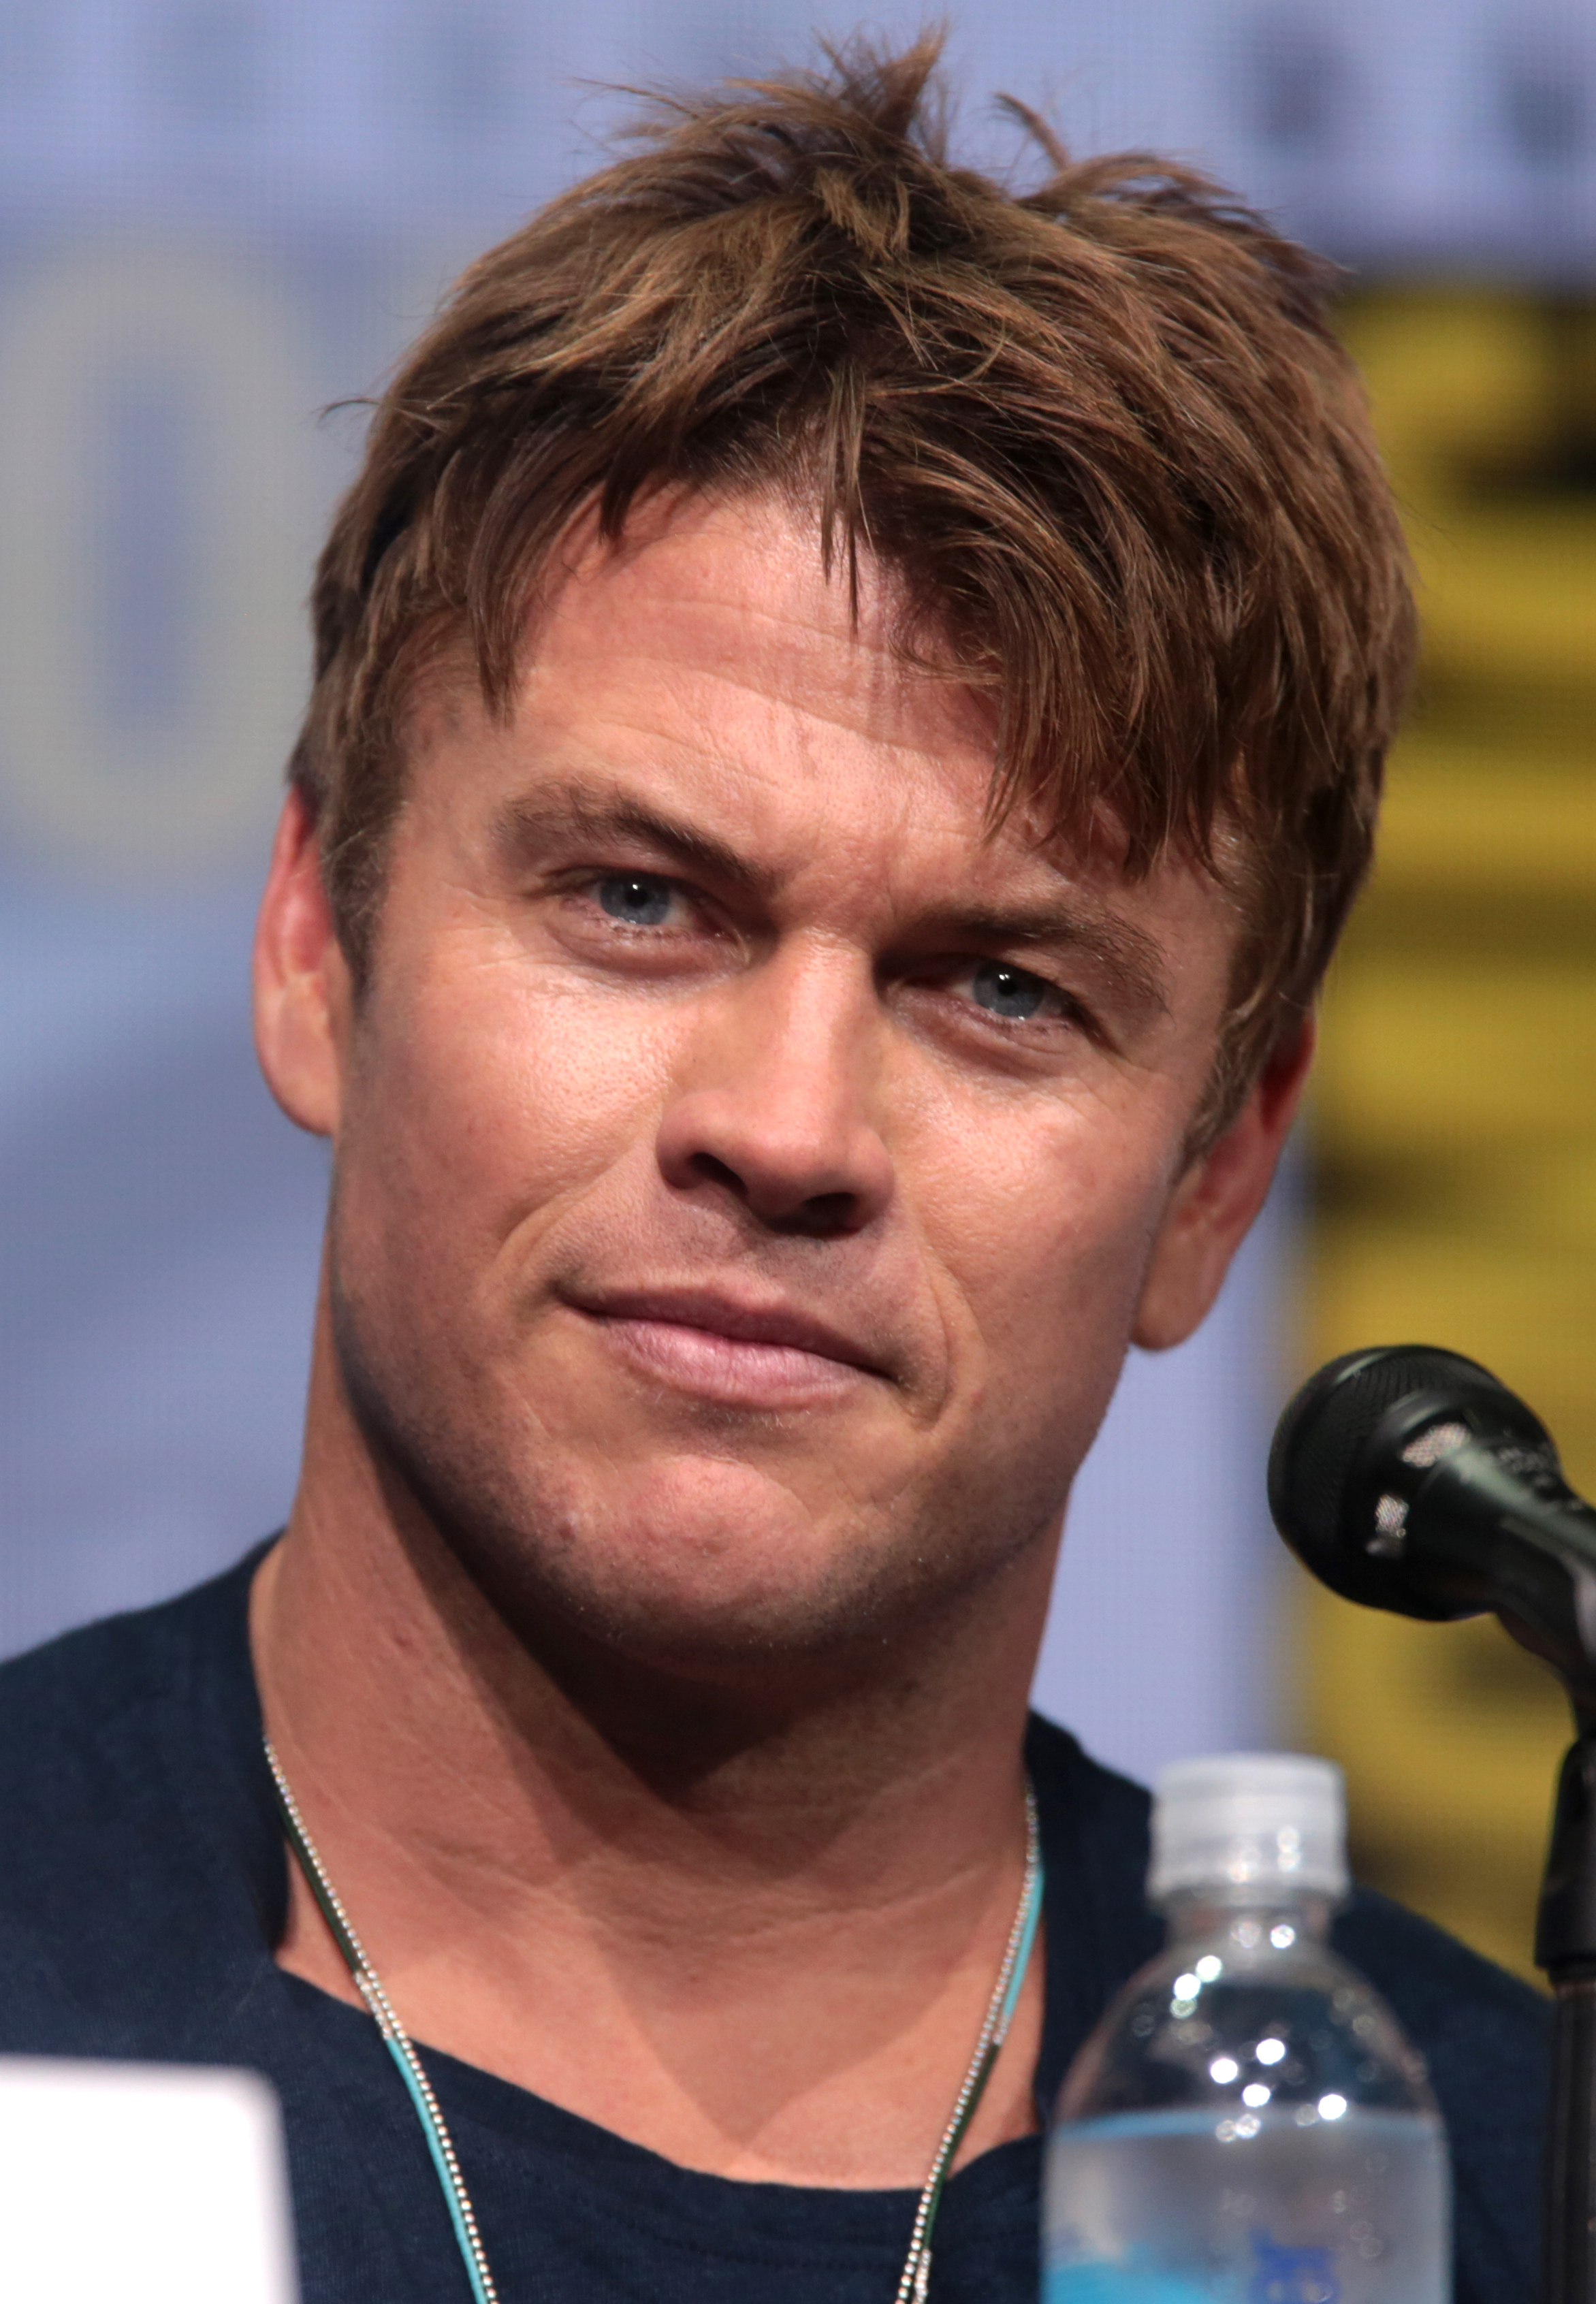 The 36-year old son of father Craig Hemsworth and mother Leonie Luke Hemsworth in 2018 photo. Luke Hemsworth earned a  million dollar salary - leaving the net worth at 0.5 million in 2018